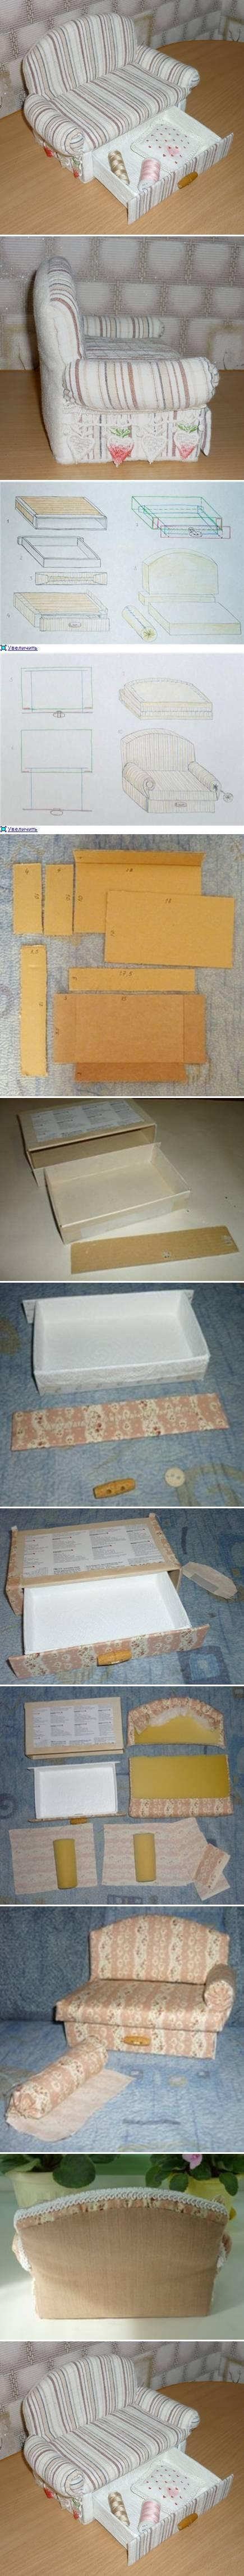 DIY Cardboard Sofa with Drawer DIY Projects | UsefulDIY.com